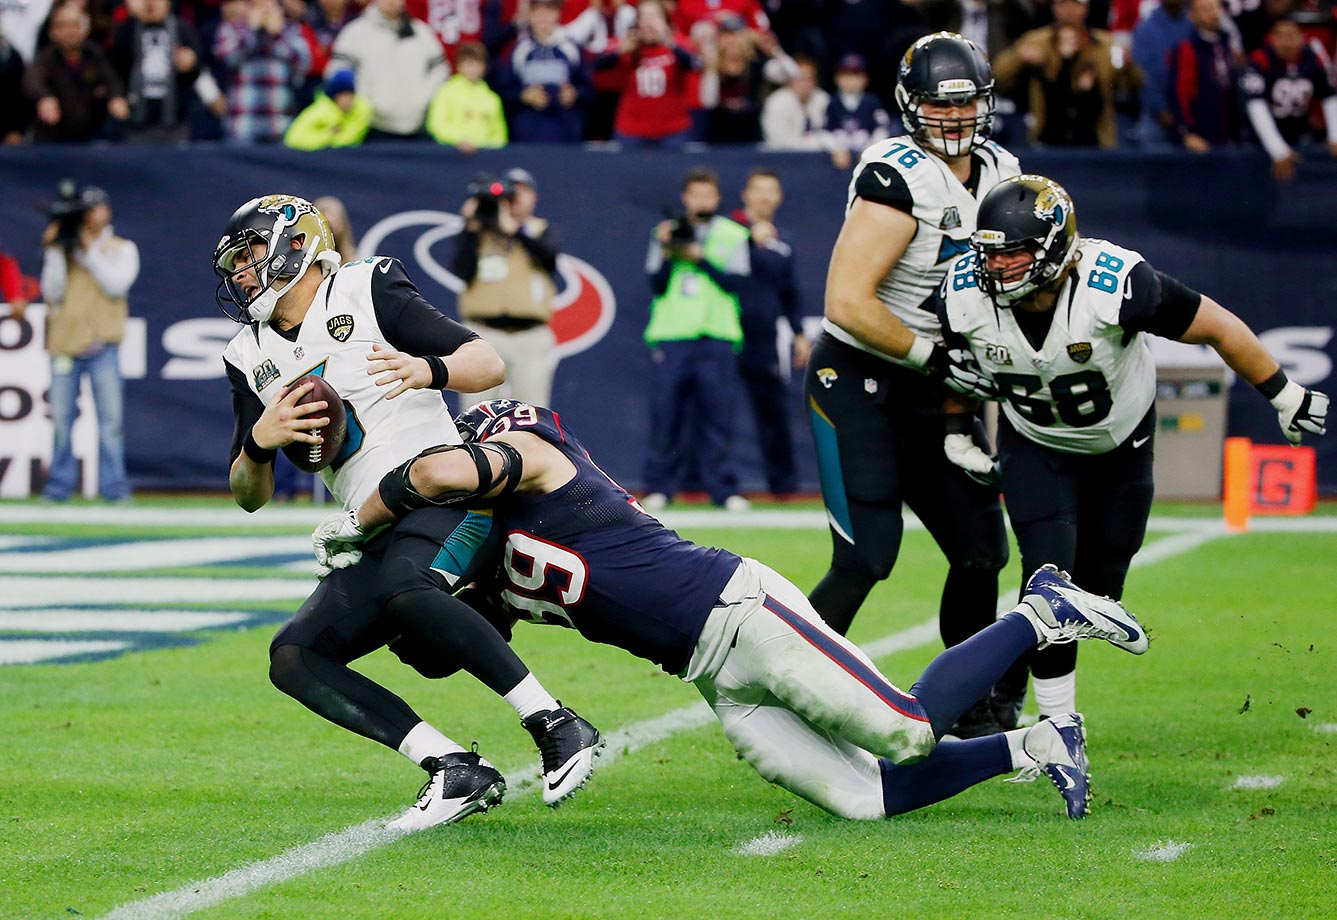 The Jaguars offensive line allowed a league-high 71 sacks last season – 13 more sacks than any other team. Some opposing waterboys were even able to pad their sacks stats. Speaking of sacks – they won't be getting any from No. 3 overall pick DE Dante Fowler, as he blew his knee out in his very first Jaguars practice.